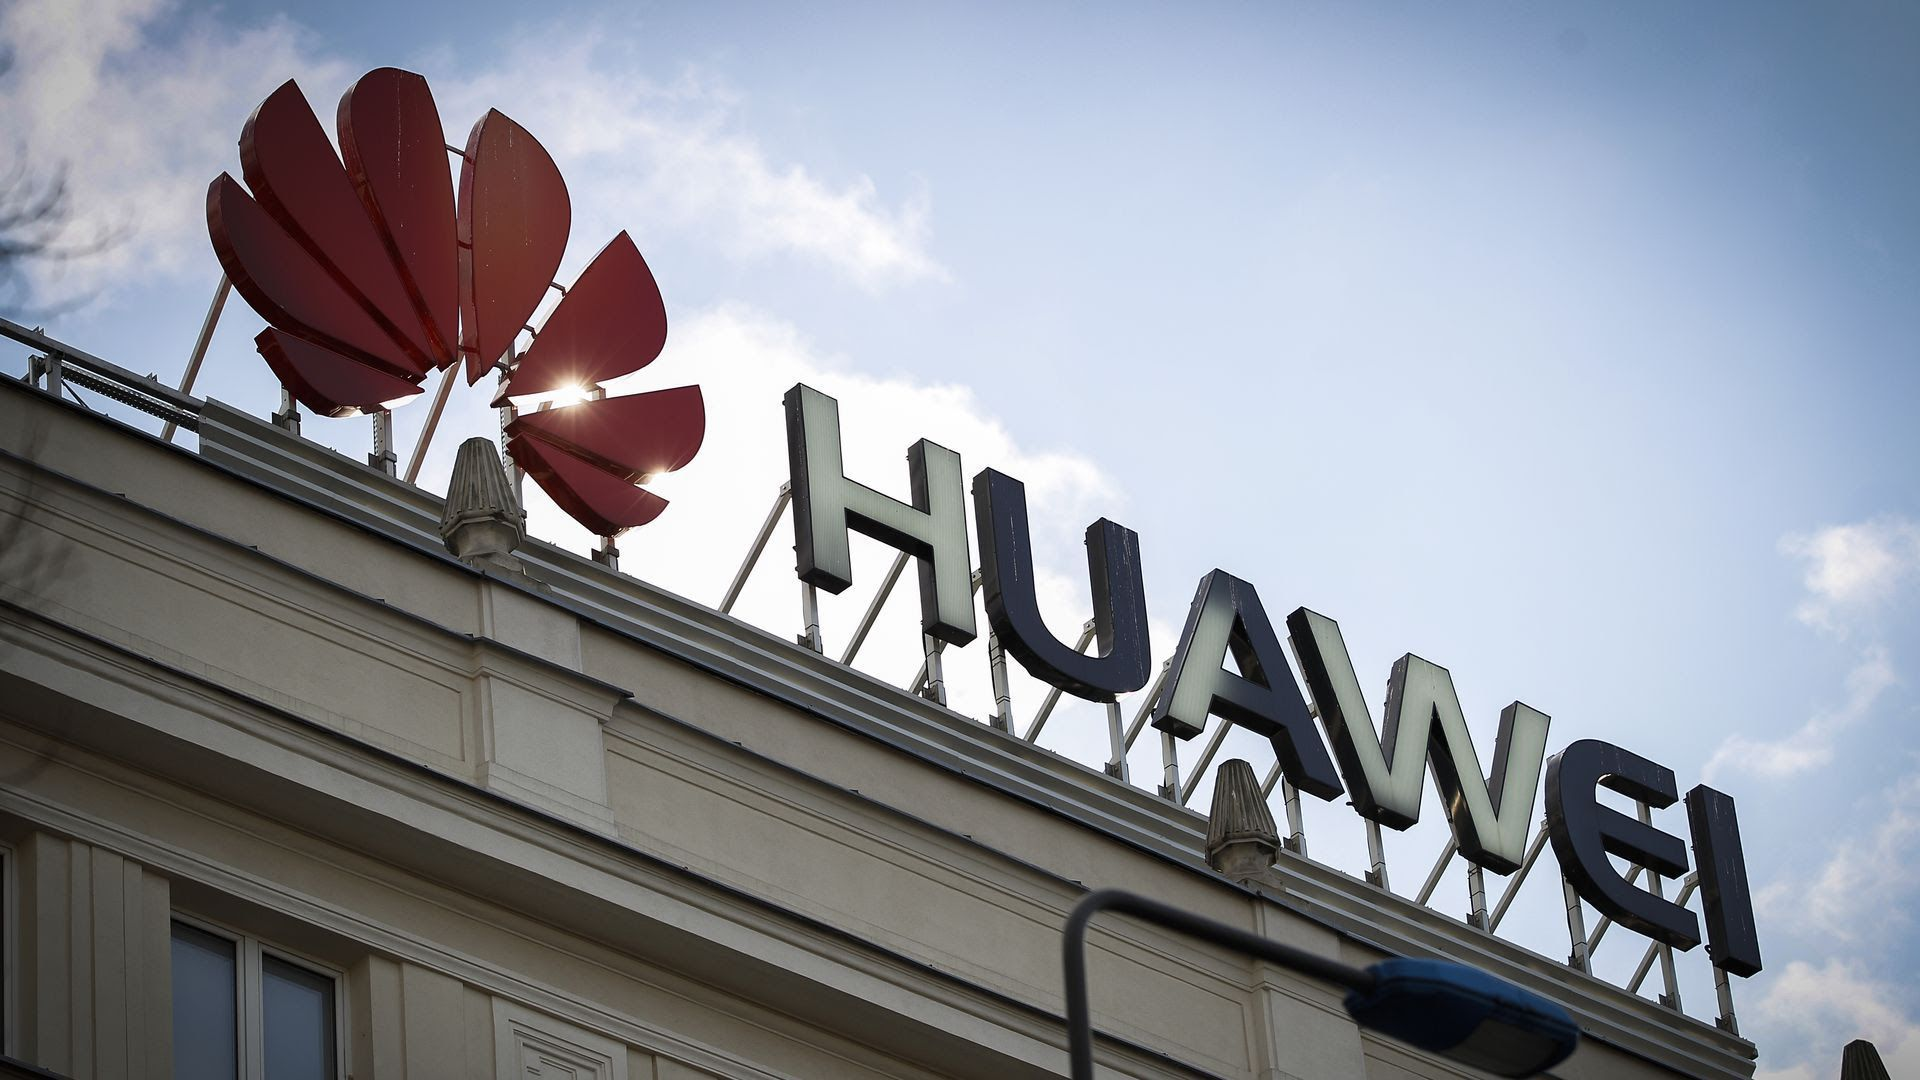 Huawei is reportedly under criminal investigation for stealing trade secrets